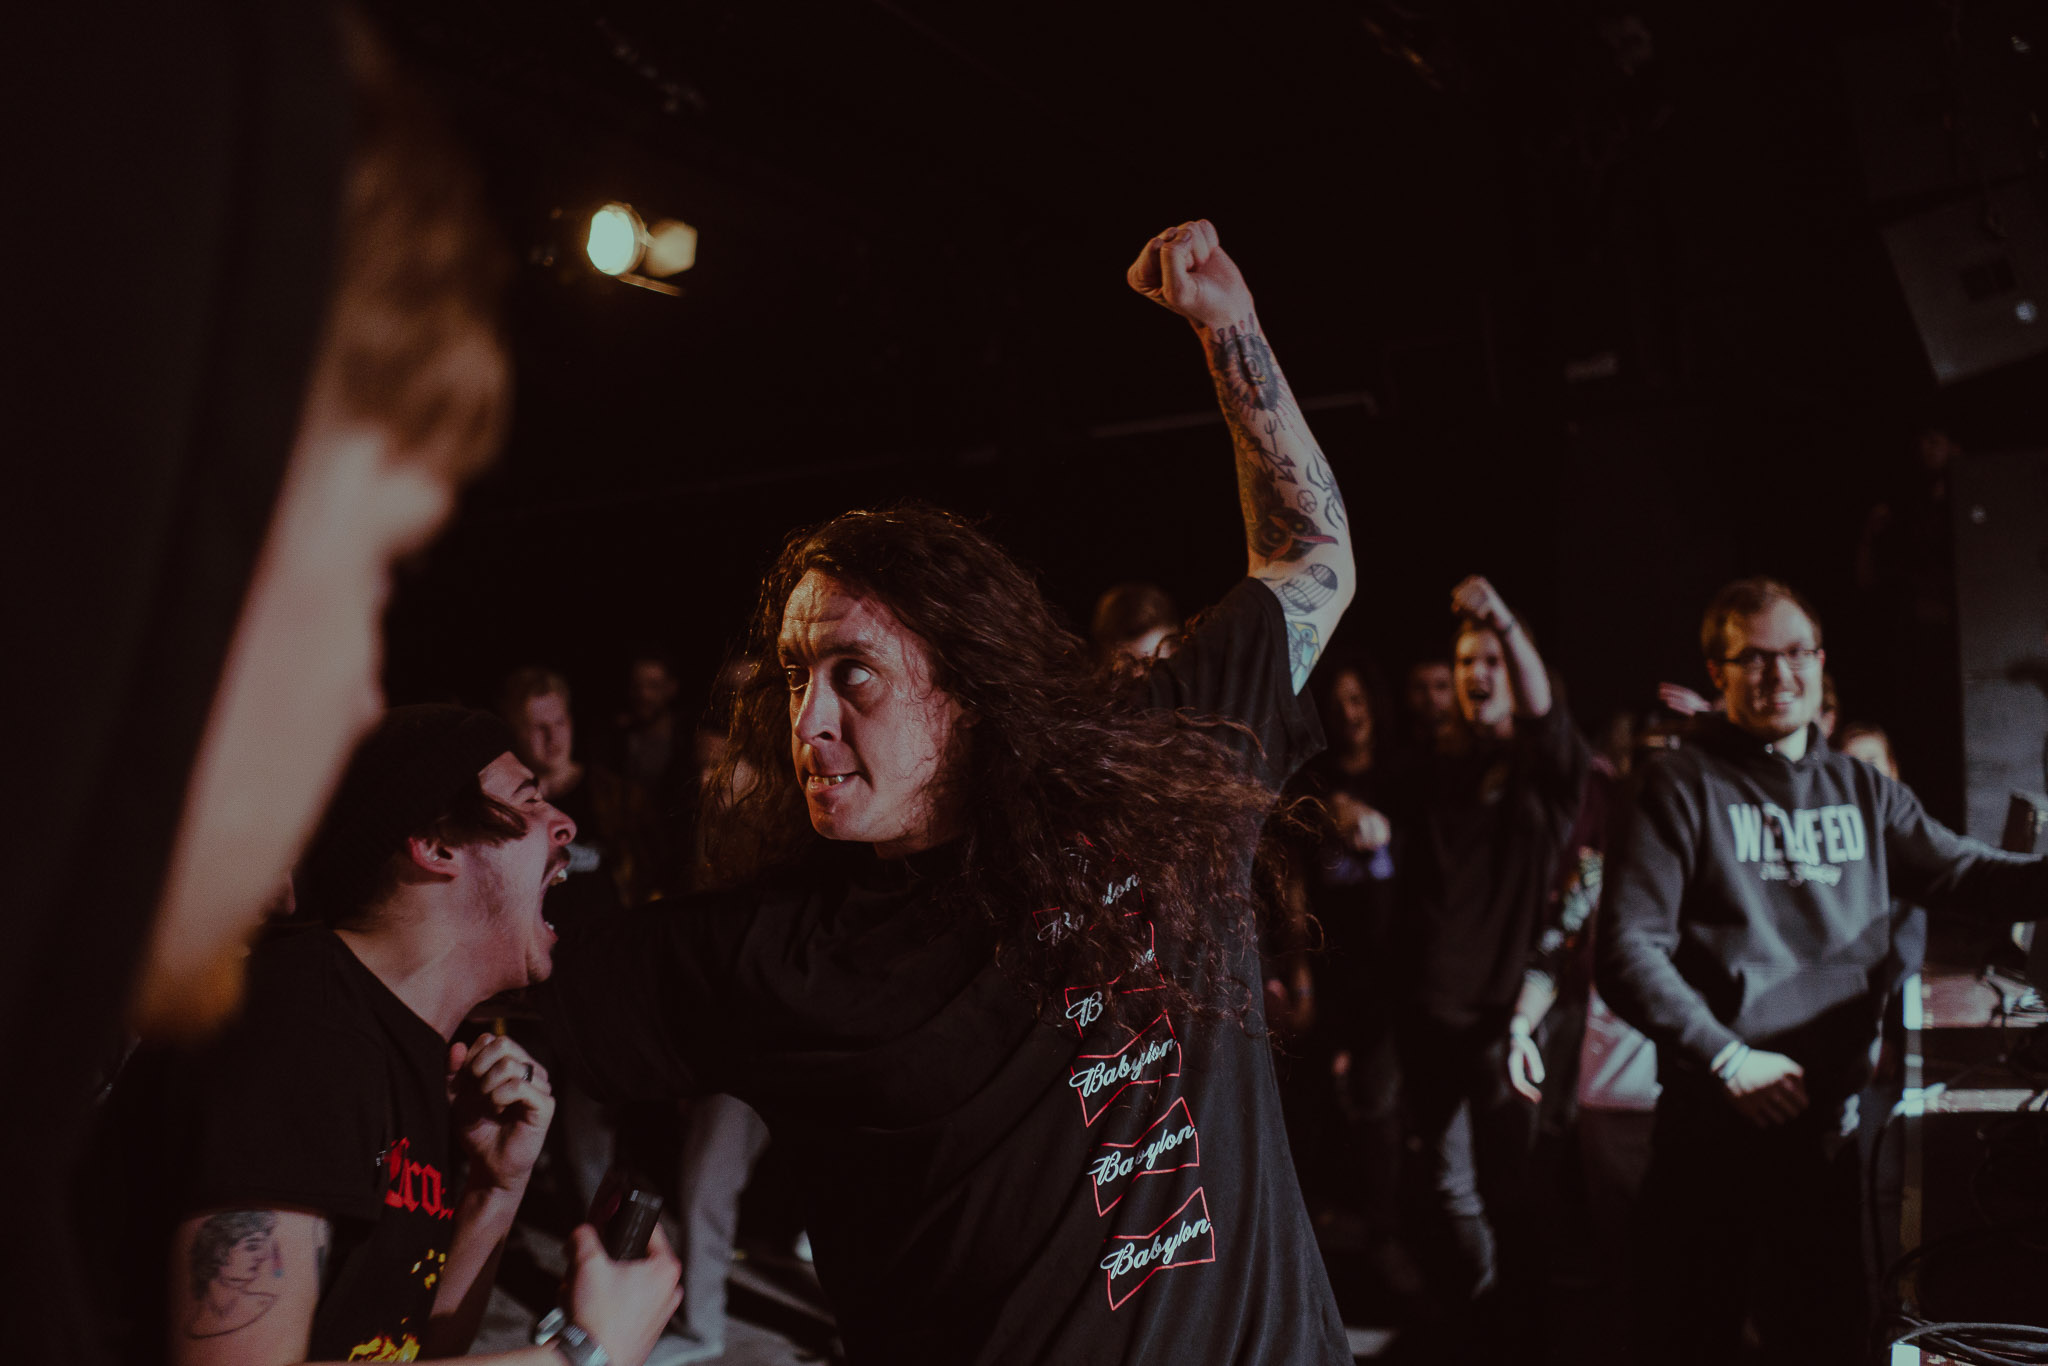 TRASH TALK_20180323_00016_@arnecrdnls.jpg